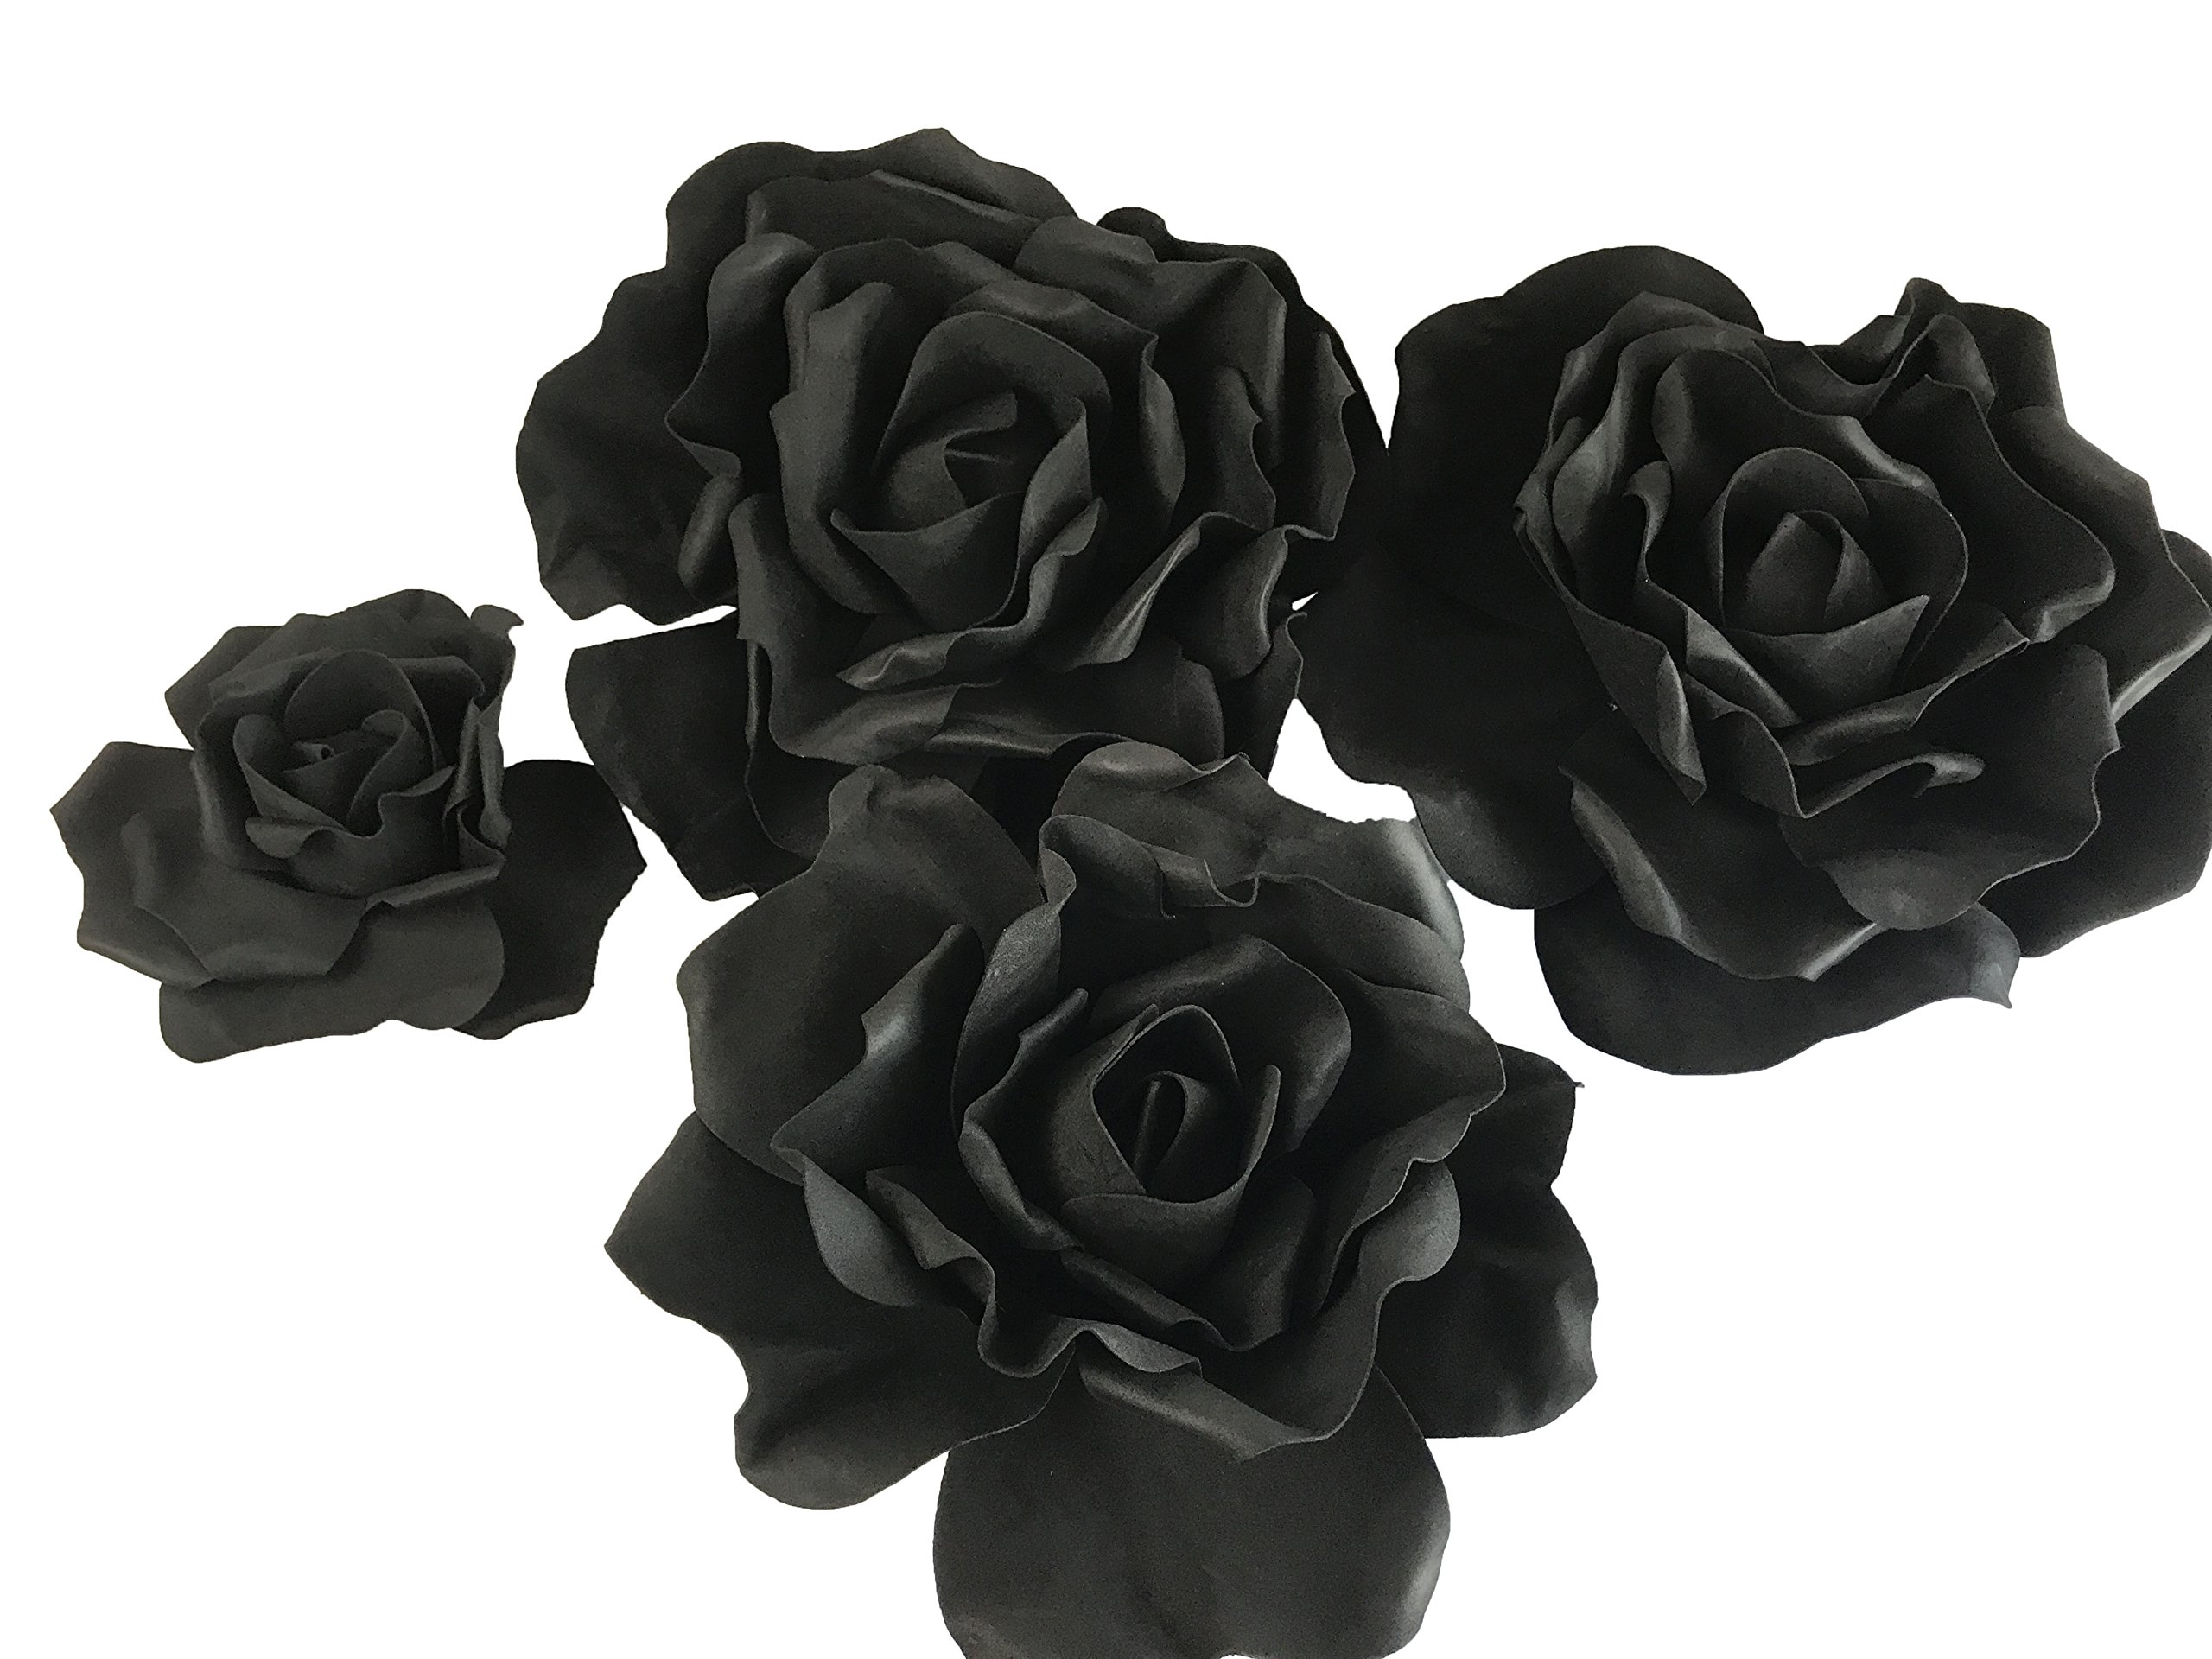 Set of 4 Classic Elegant Giant foam Flowers(FLOATING). Real Touch 3D Artificial Roses. Wedding Backdrop, Photo-booth, Backdrop, Nursery, Wall, Archway, Home Decoration Centerpiece (Black)